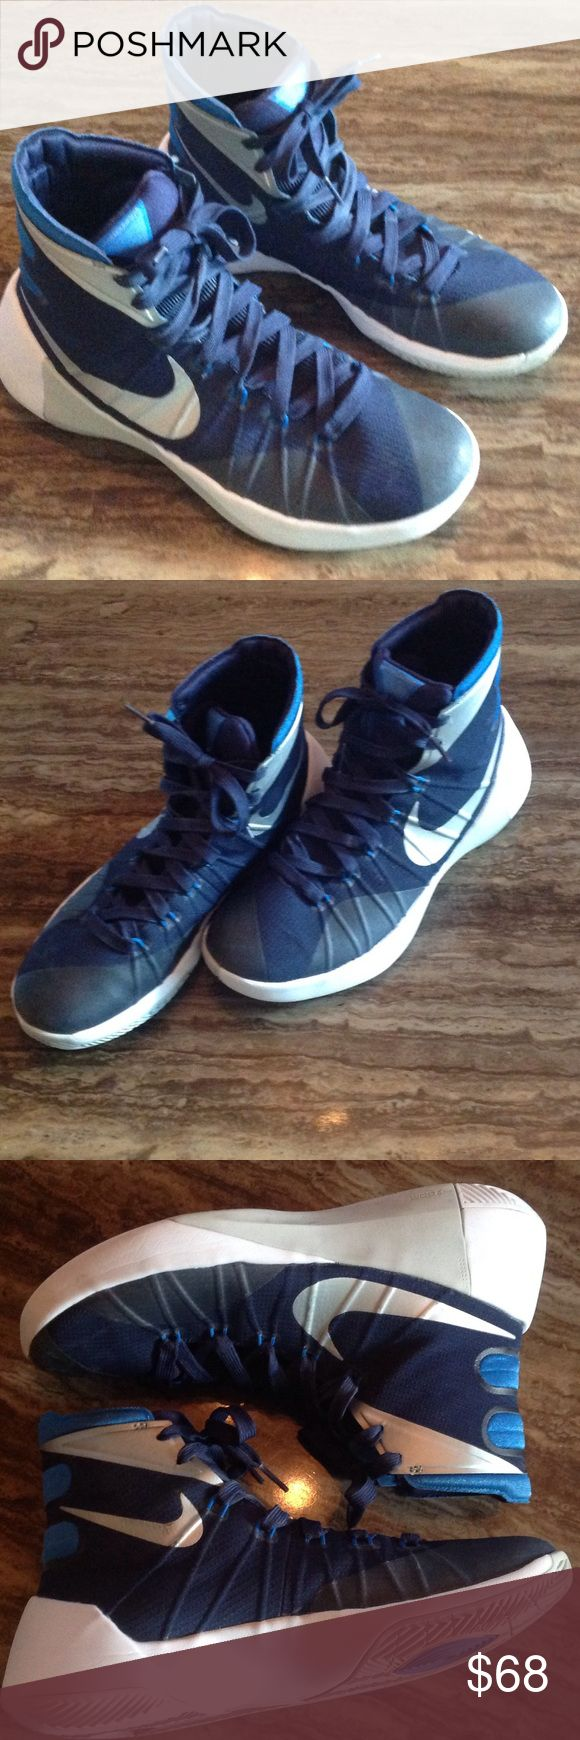 NIKE HYPERDUNK 2015 women's Basketball shoes 9.5 This is a nice pair of Nike HYPERDUNK basketball shoes in a size 9.5.  They are navy blue, electric blue, silver, grey and white.  They show some little signs of wear see photo for more condition details.   https://tmblr.co/ZWjKhc2QAtidb